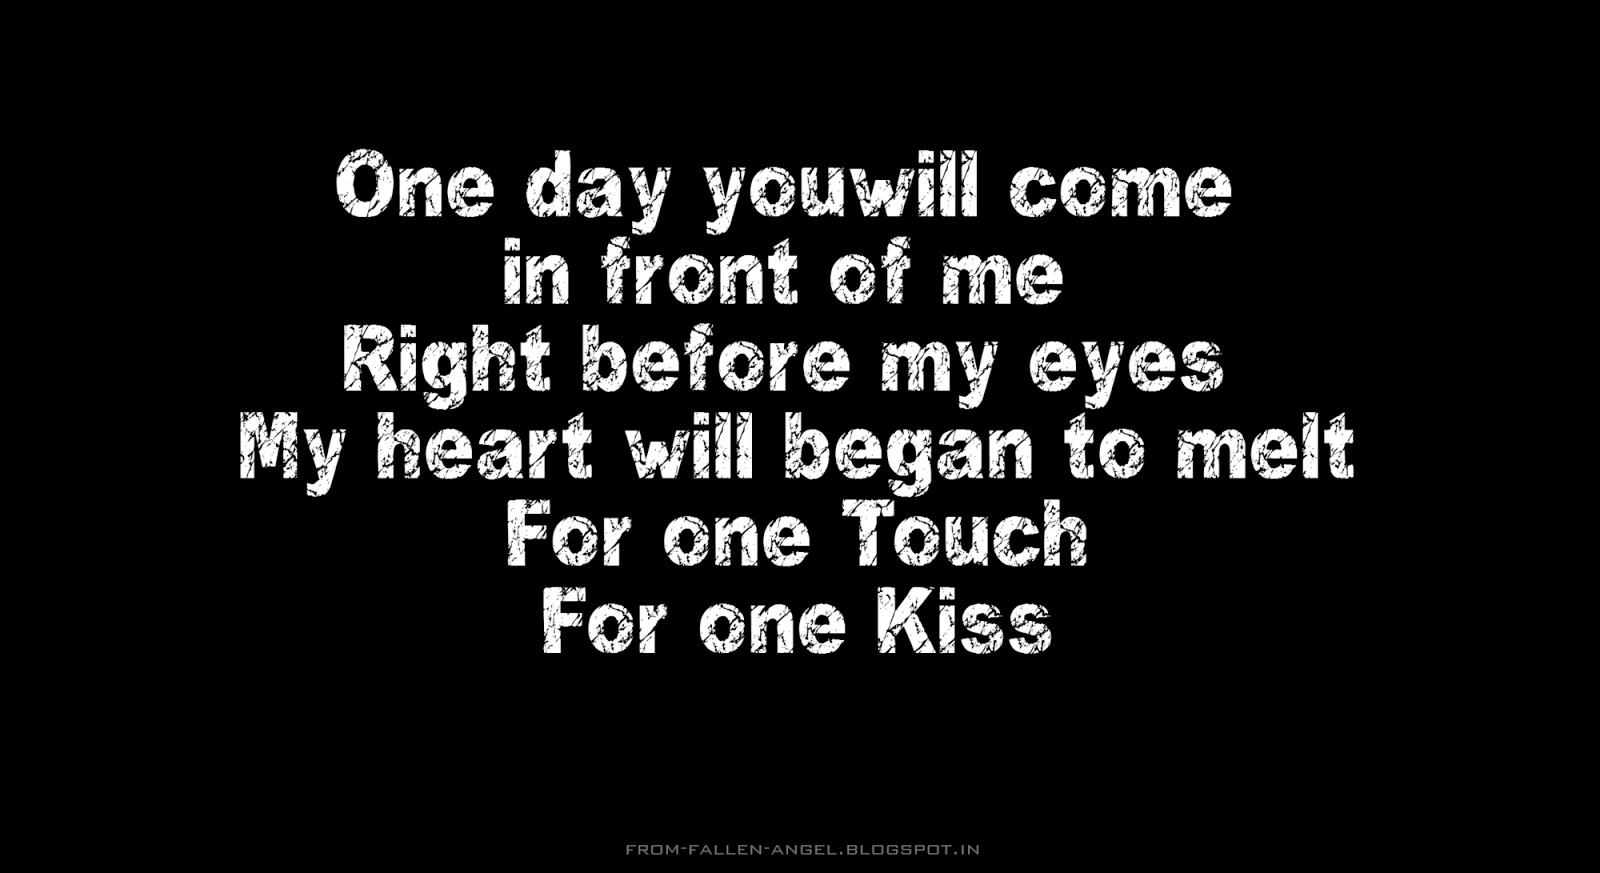 One day you will come in front of me Right before my eyes My heart will began to melt For one touch for one kiss